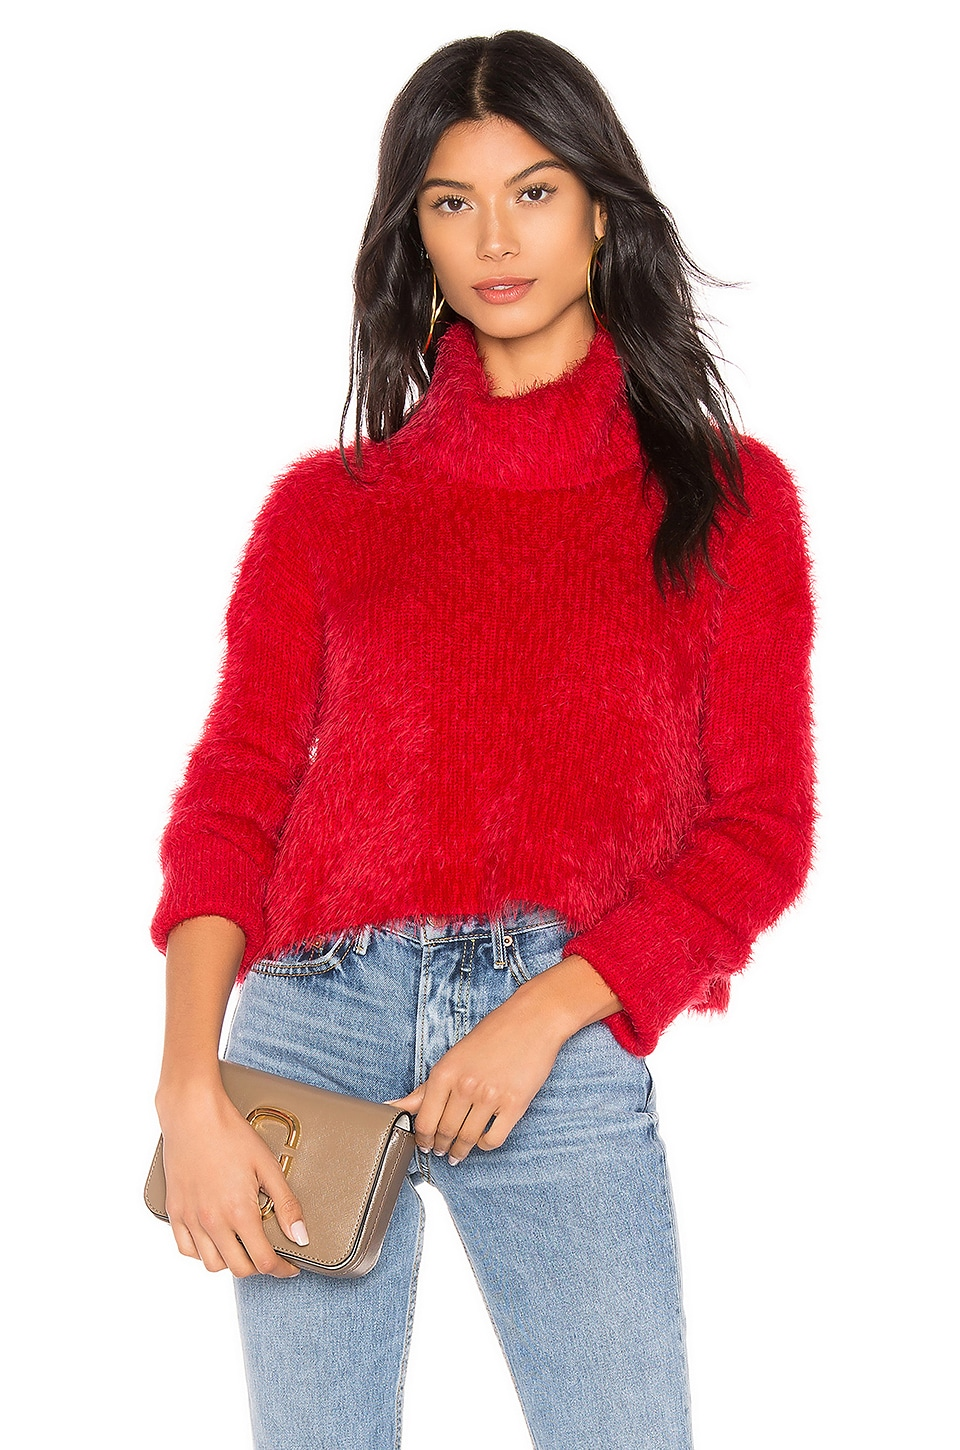 BB Dakota JACK by BB Dakota Bat Your Lashes Sweater in Cherry Red